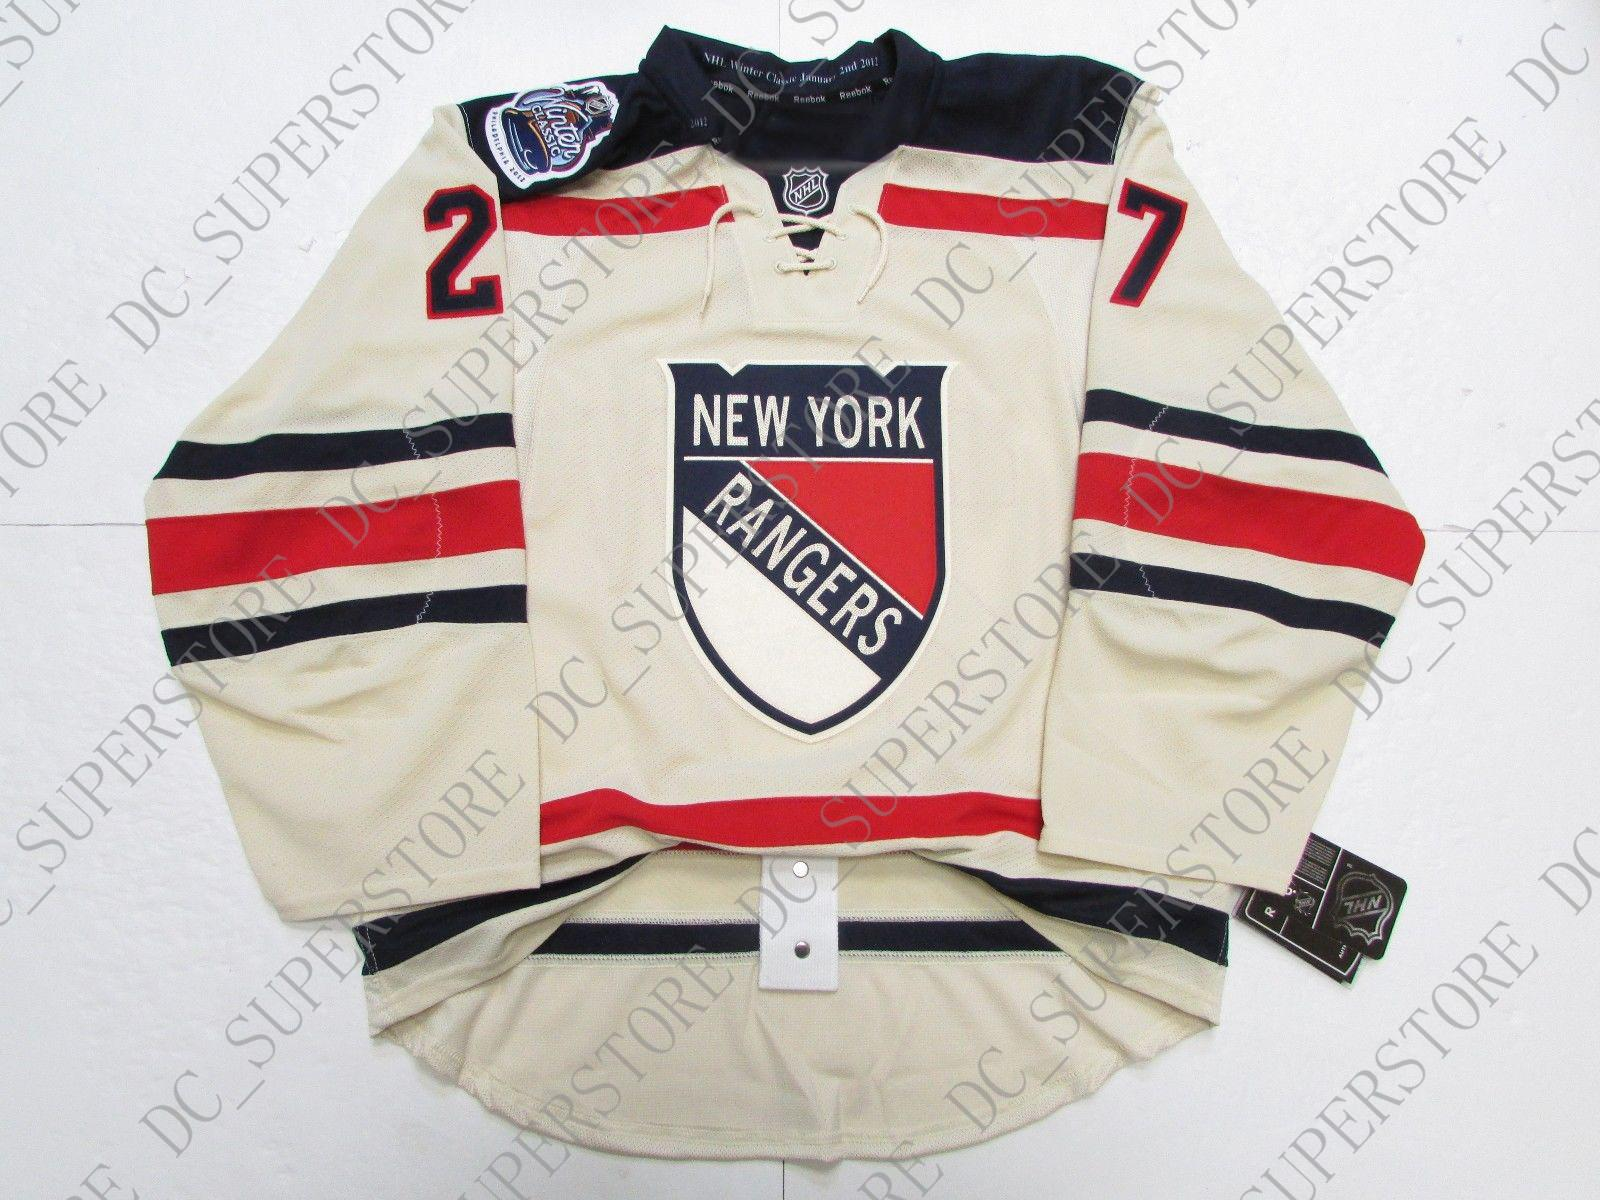 outlet store 1123c e2ee8 Cheap custom McDONAGH NEW YORK RANGERS 2012 WINTER CLASSIC JERSEY stitch  add any number any name Mens Hockey Jersey XS-5XL